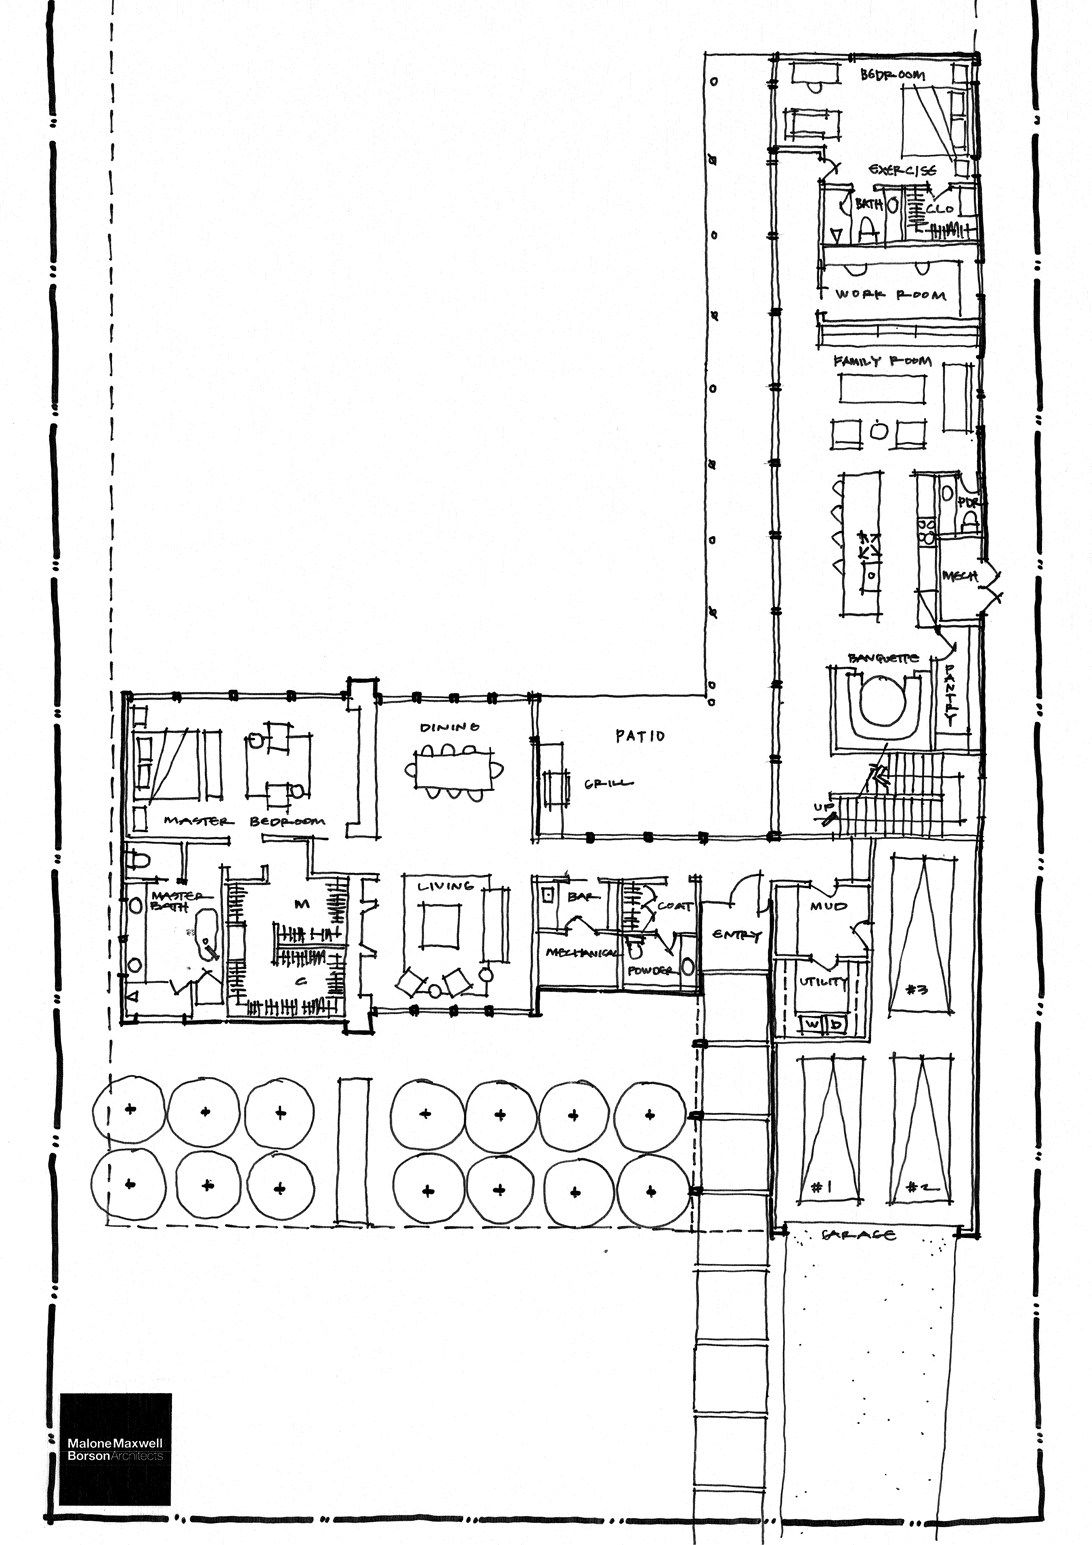 Bob Borson - Schematic Design Ground Floor Plan final | House ideas ...